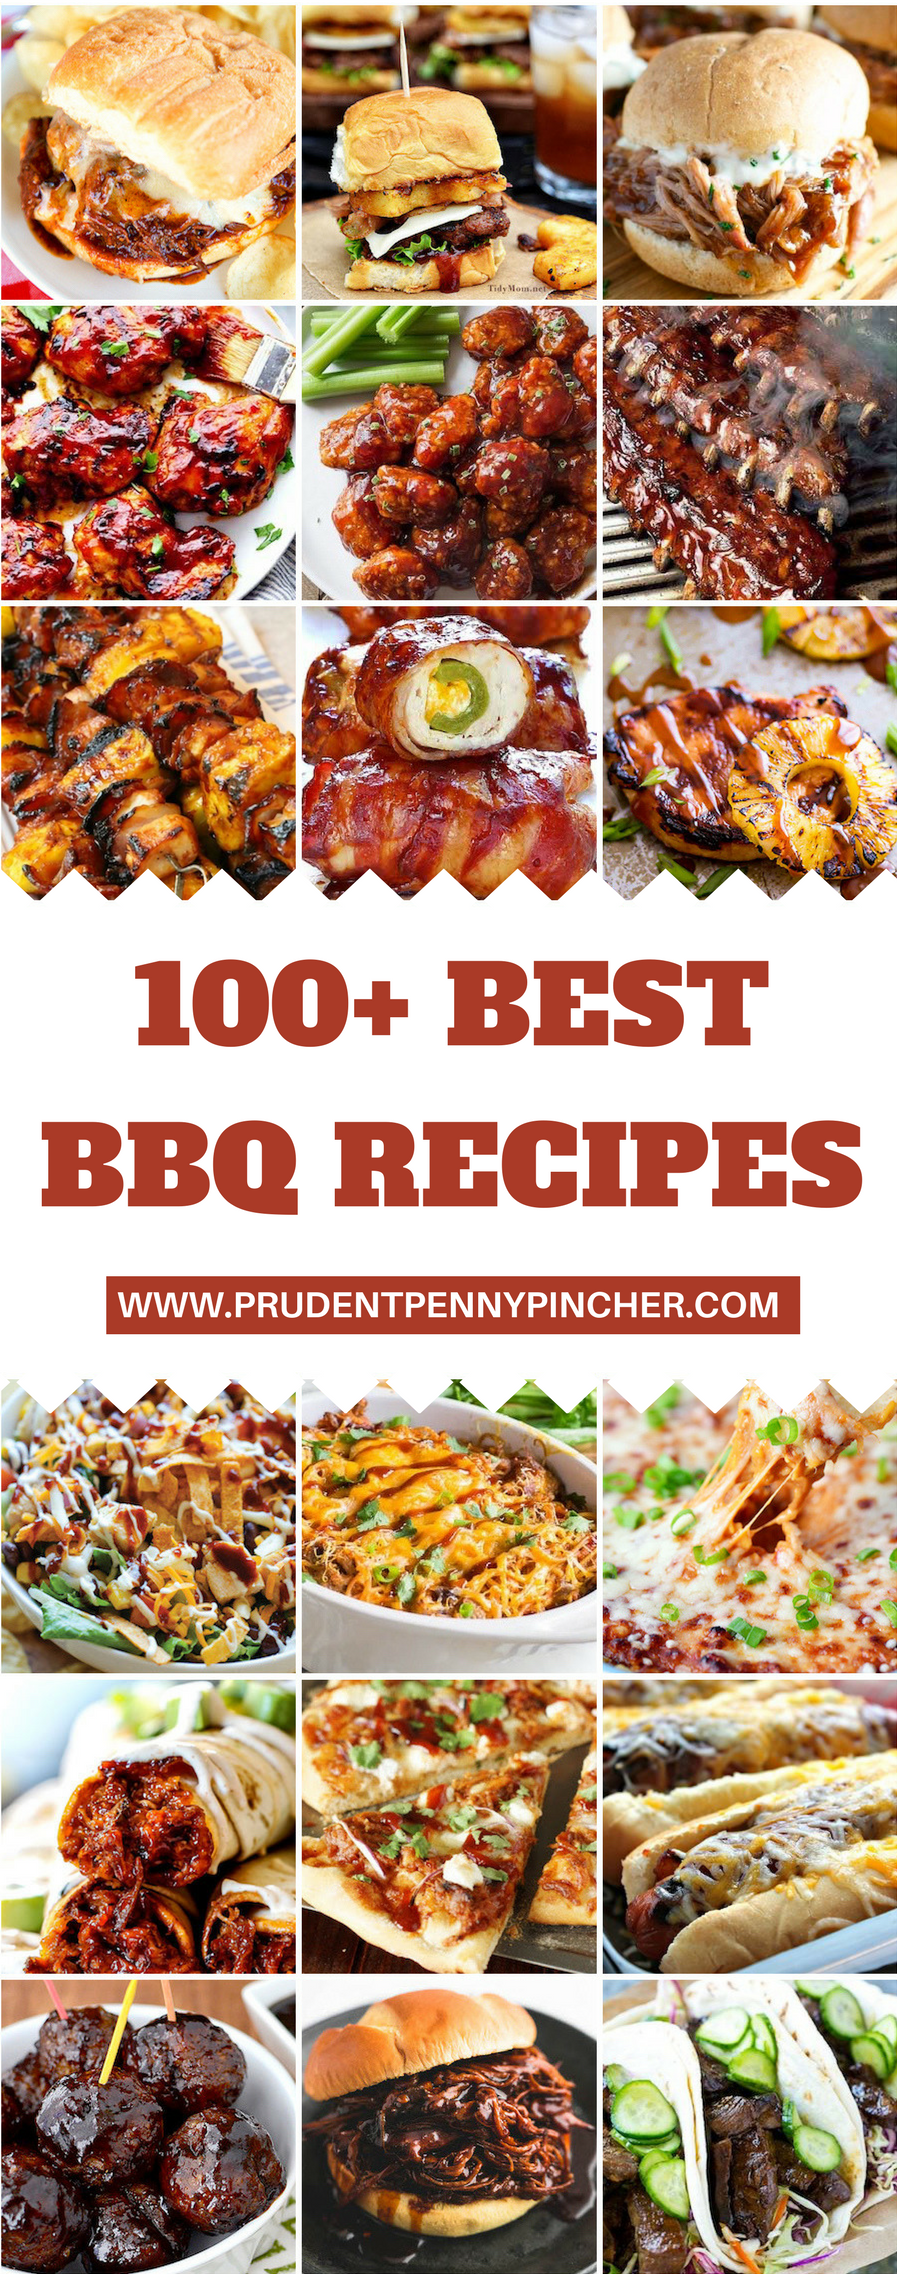 PLANNING BIG BBQ'S and PICNICS Whether it's real BBQ smoked for many hours, grilled meats, Lazy-Q precooked and finished on the grill, or pseudo-Q (BBQ-style food from oven or kitchen), the barbecue meal is a very popular choice.